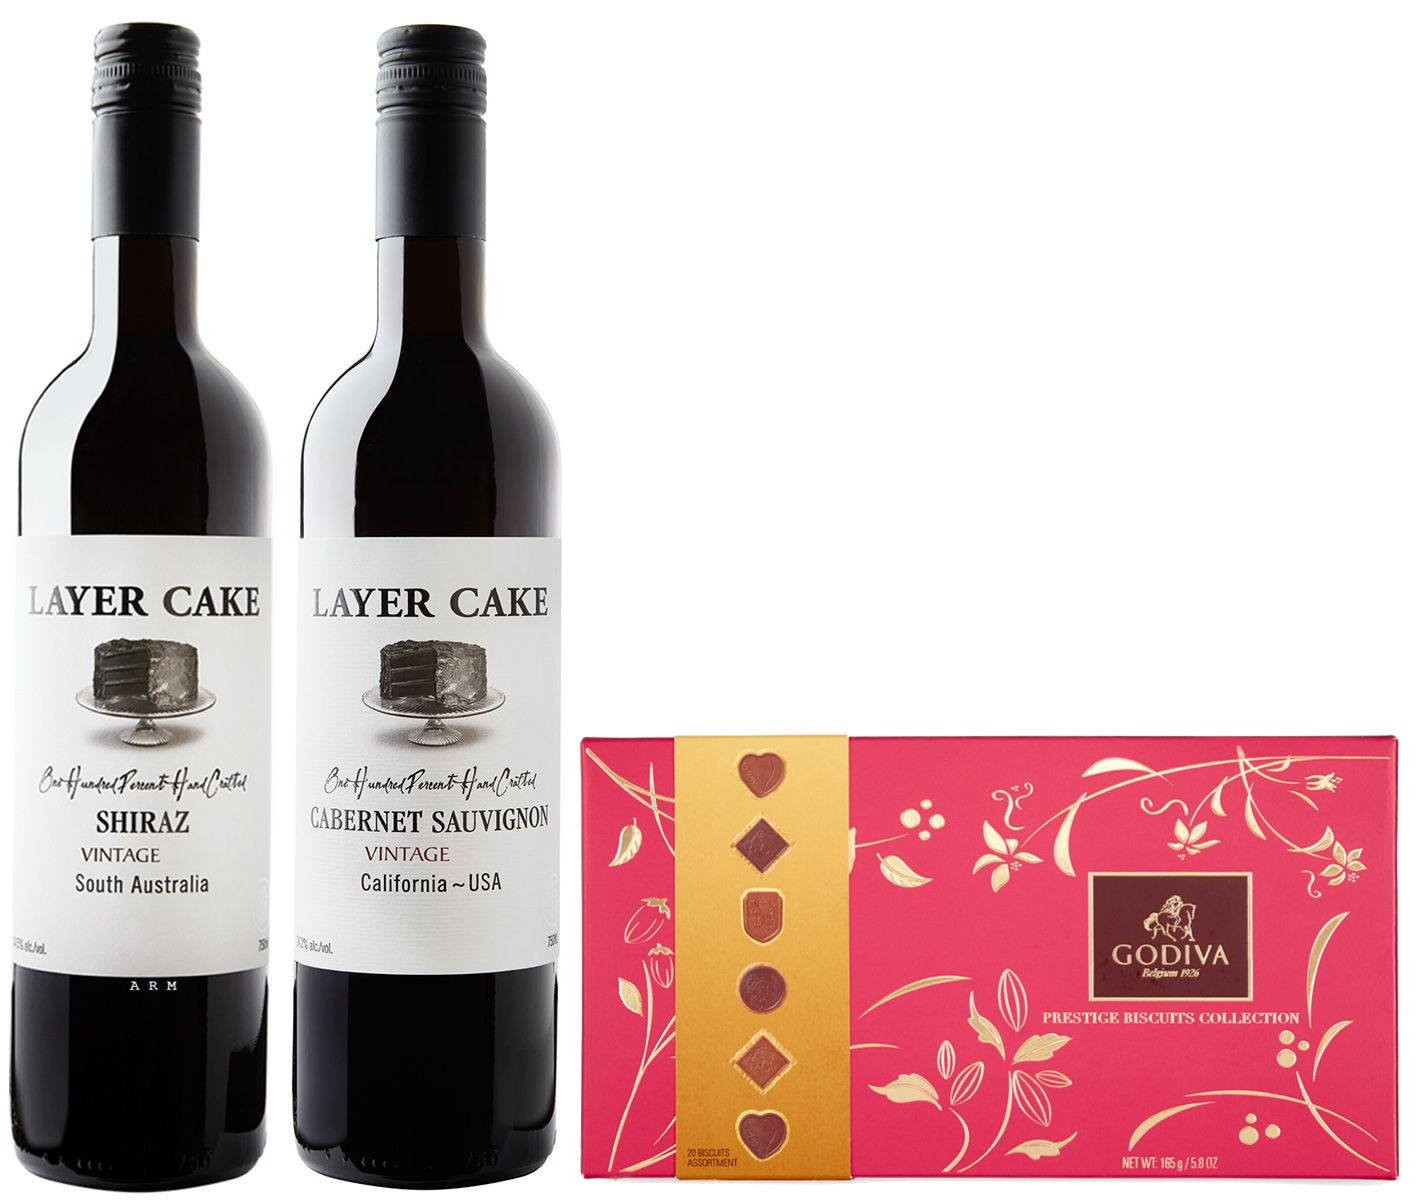 wine.com Reds & Godiva Chocolate Biscuits Gift Set Gift Product Image